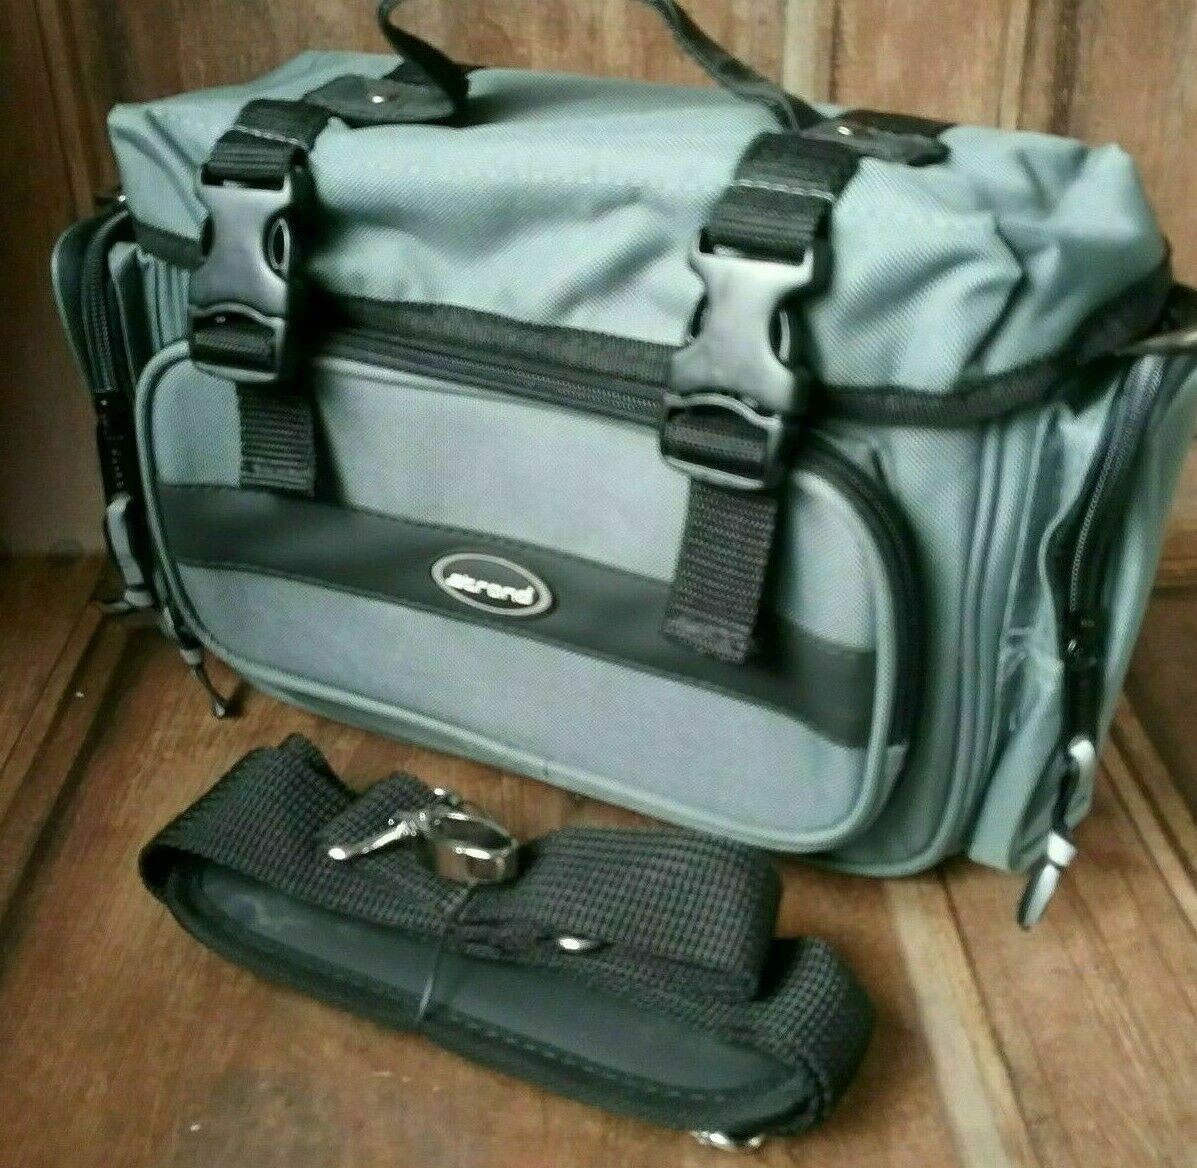 Padded GoPro Gadget Accessory Camcorder camera bag Case with Strap by strand